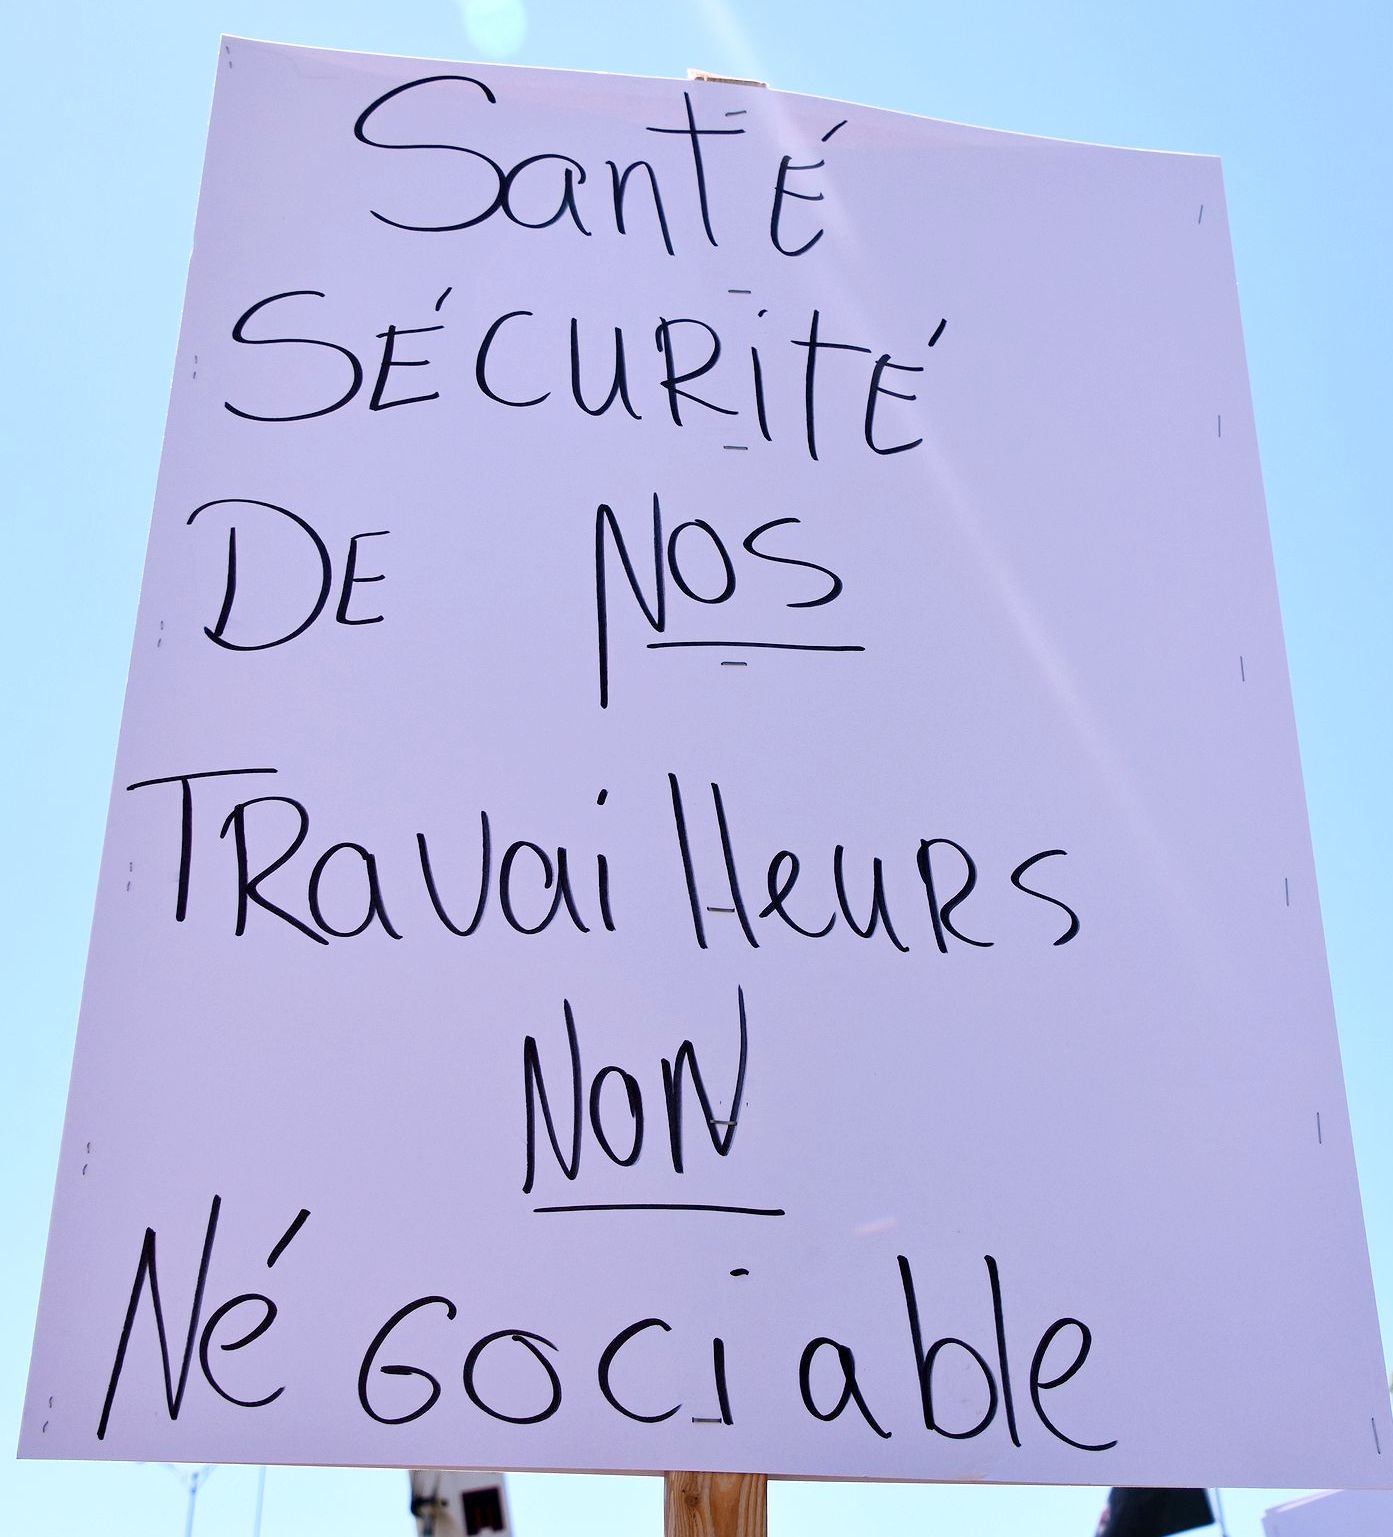 http://cpcml.ca/images2020/WorkersEconomy/Construction/File/180621-MTL-Grutiers-05.jpg